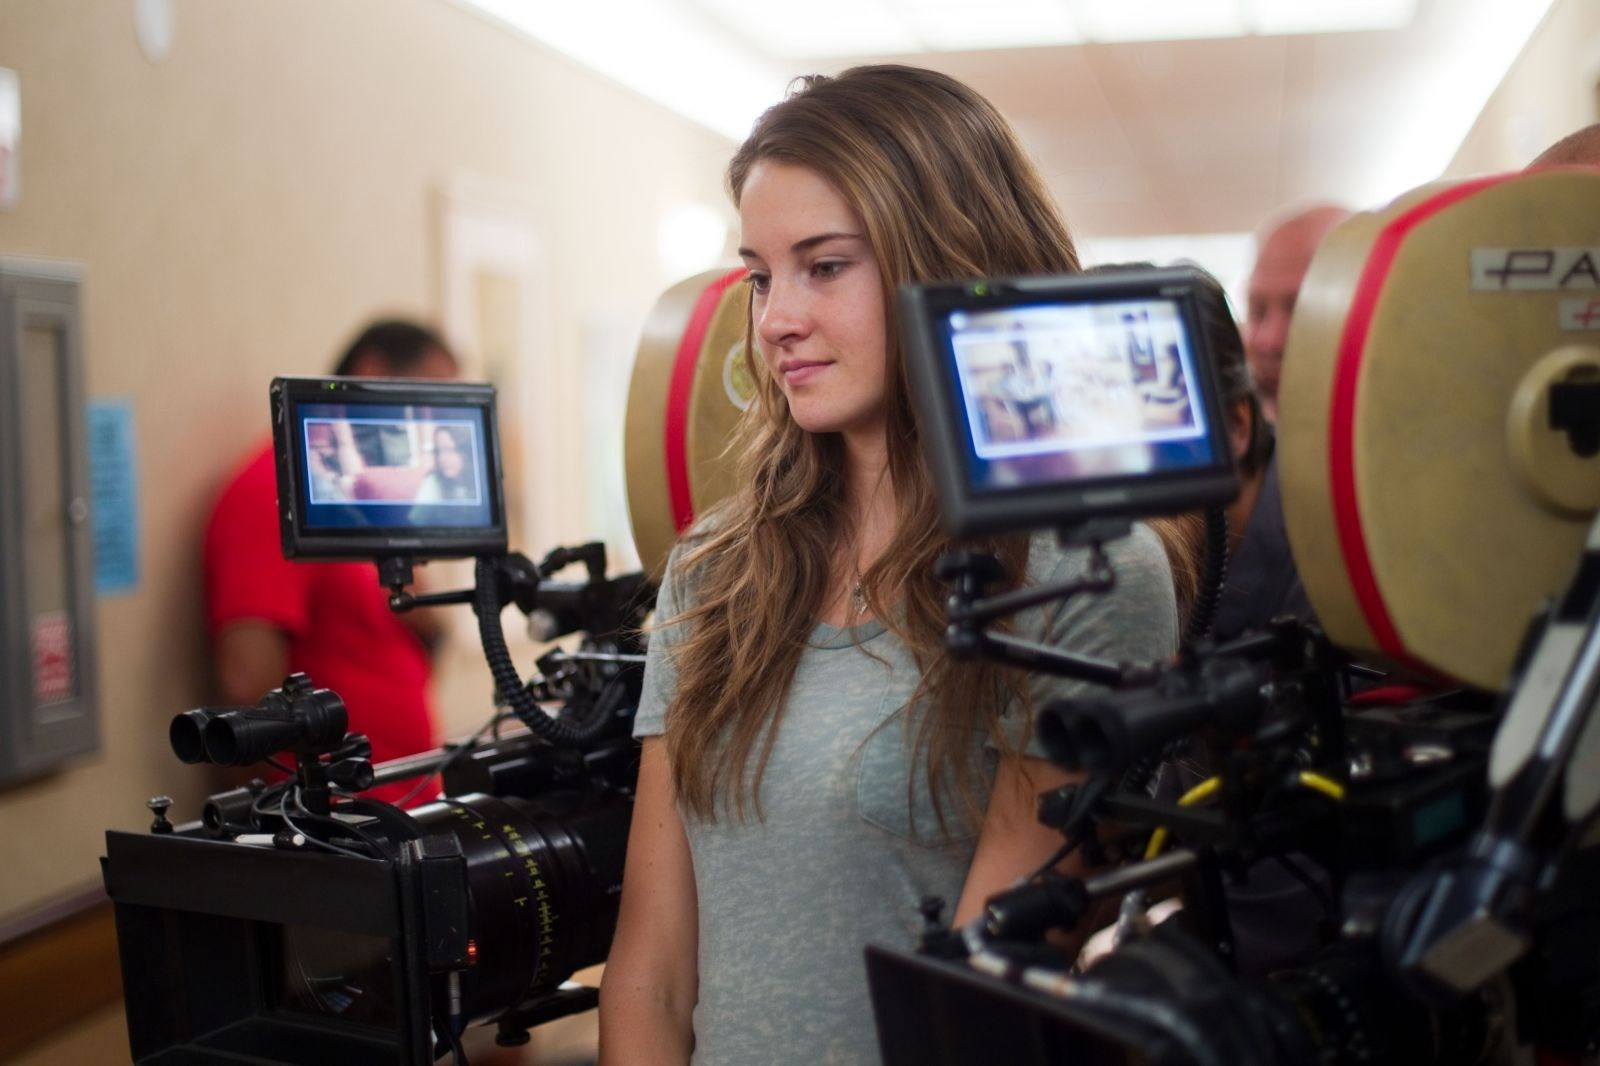 Shailene Woodley : The Descendants (2011) Behind the Scenes